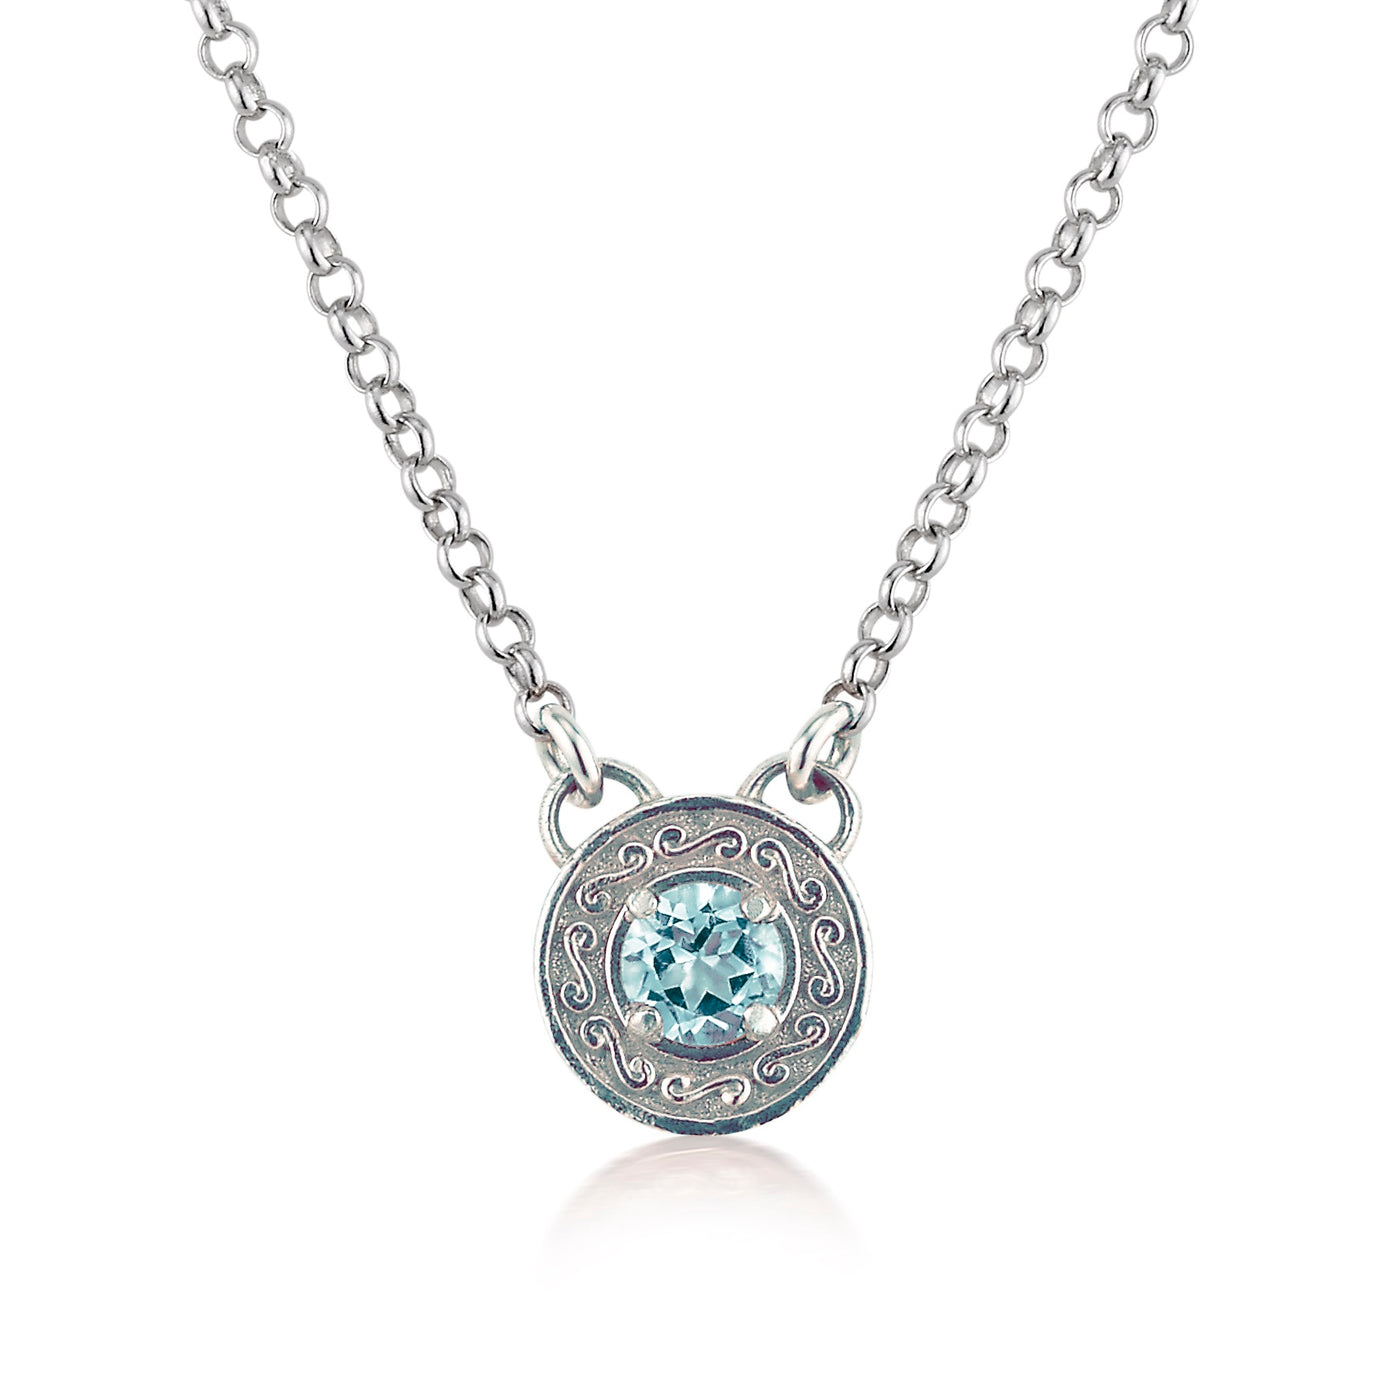 AT 524A18 BLUE TOPAZ FILIGREE NECKLACE